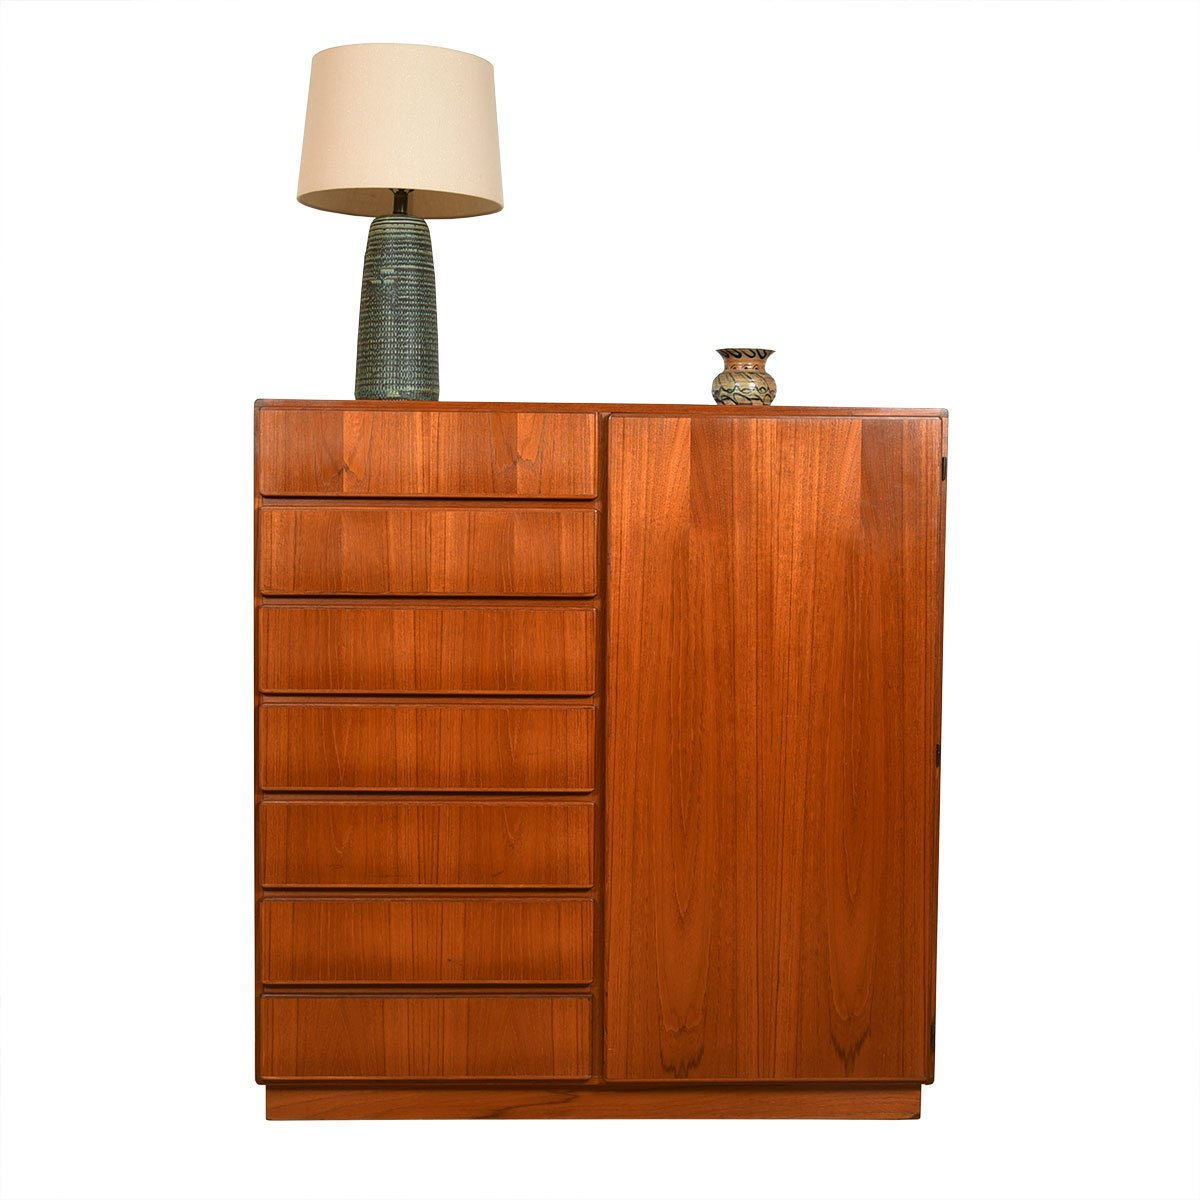 KOMFORT Danish Teak Storage 'Gents' Chest / Dresser